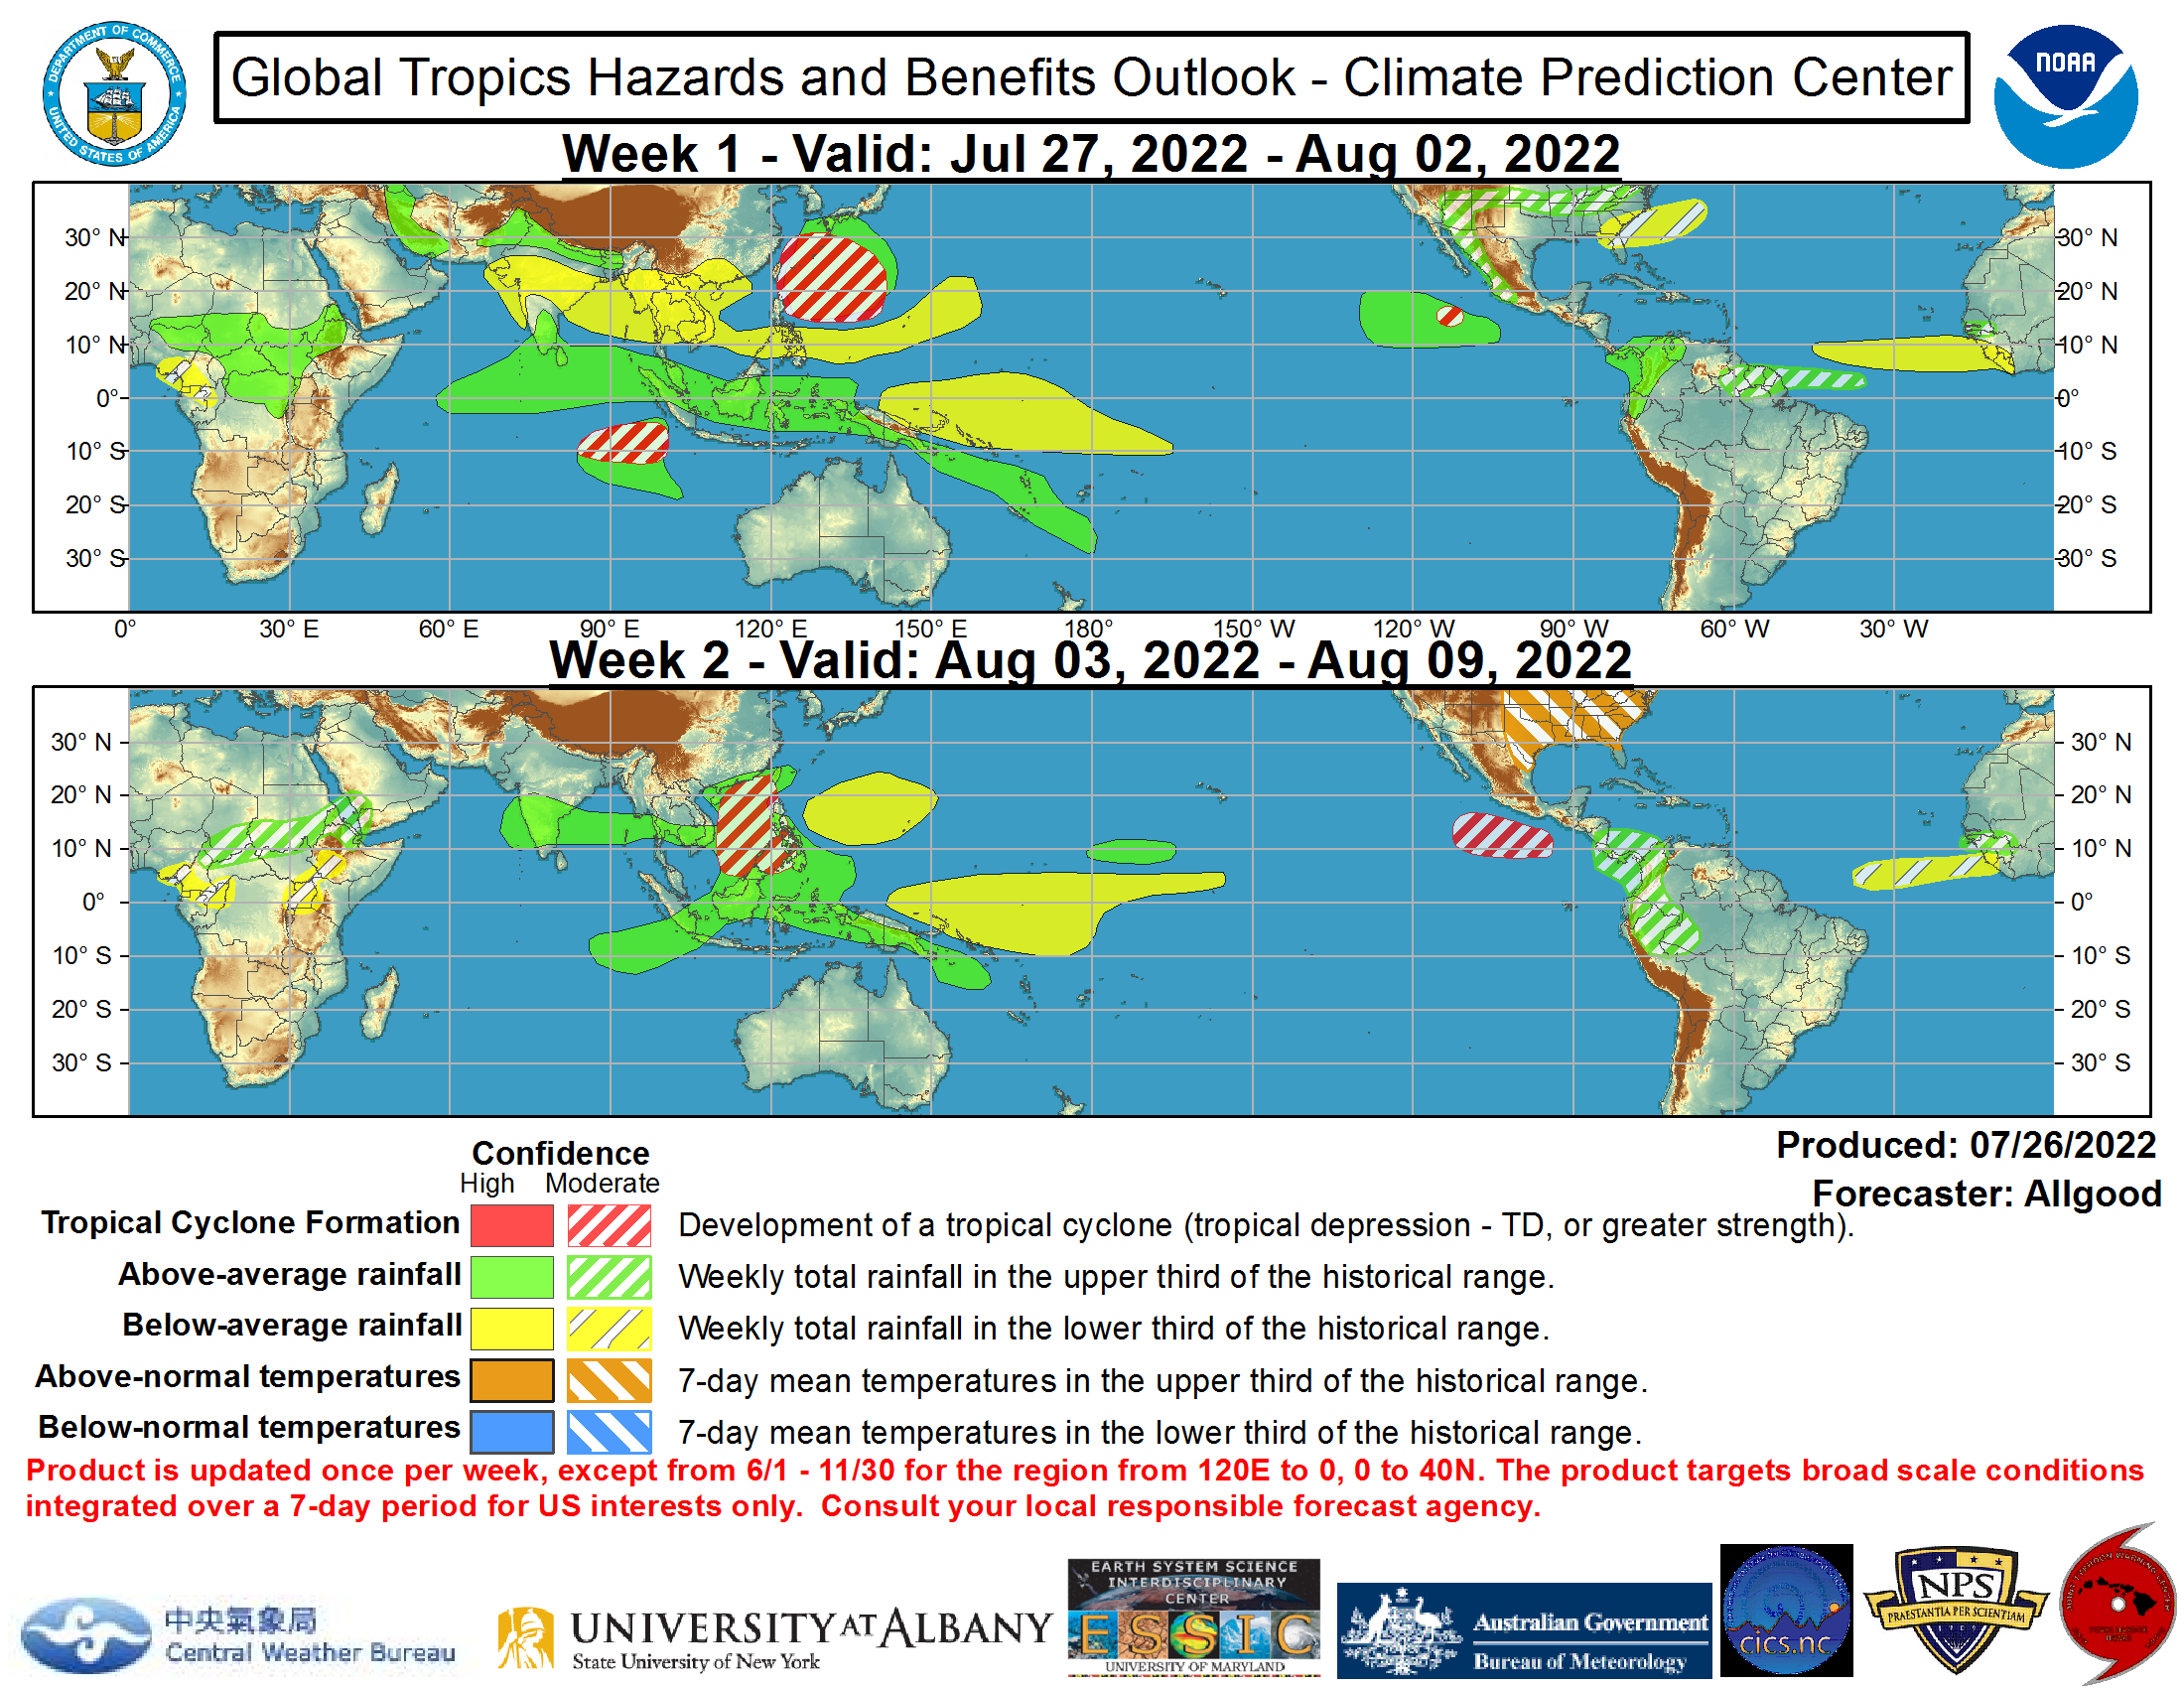 Latest Global Tropics Hazards Outlook